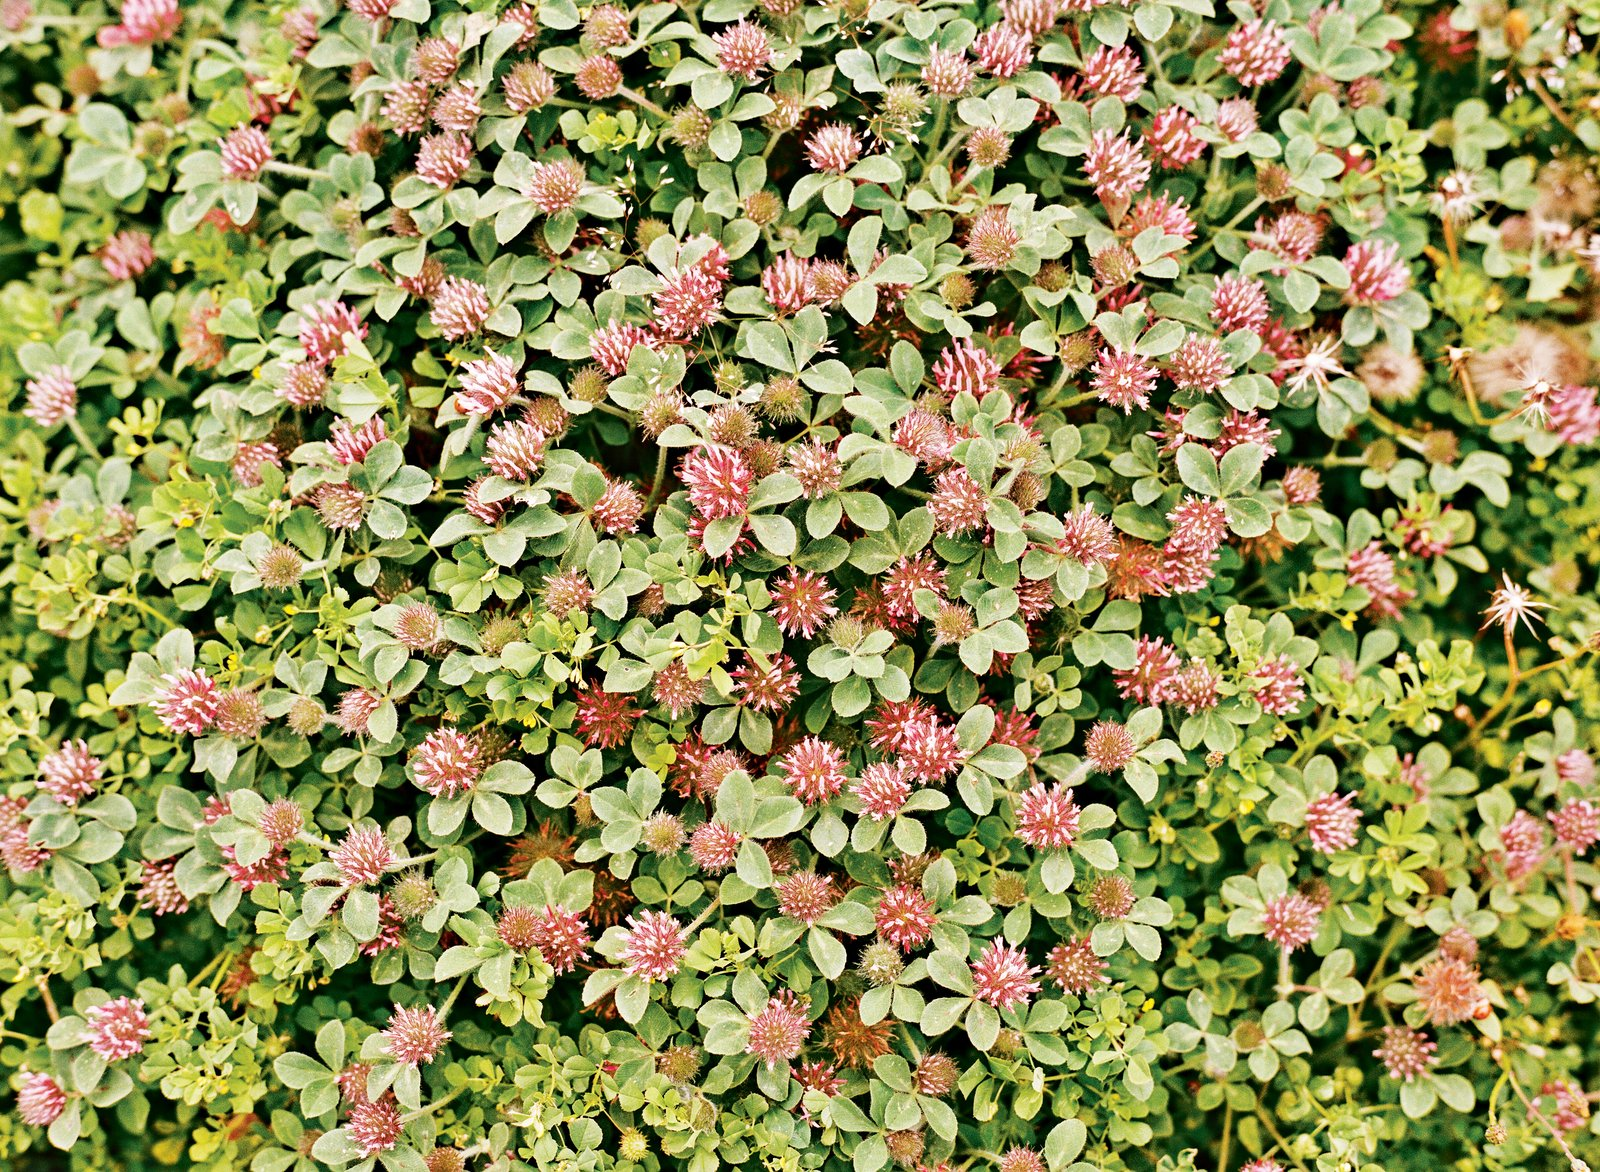 Plantings such as red clover and weeds, including black medic, are watered and pollinated naturally.  野草 from A Two-Part Landscaping Renovation in San Francisco